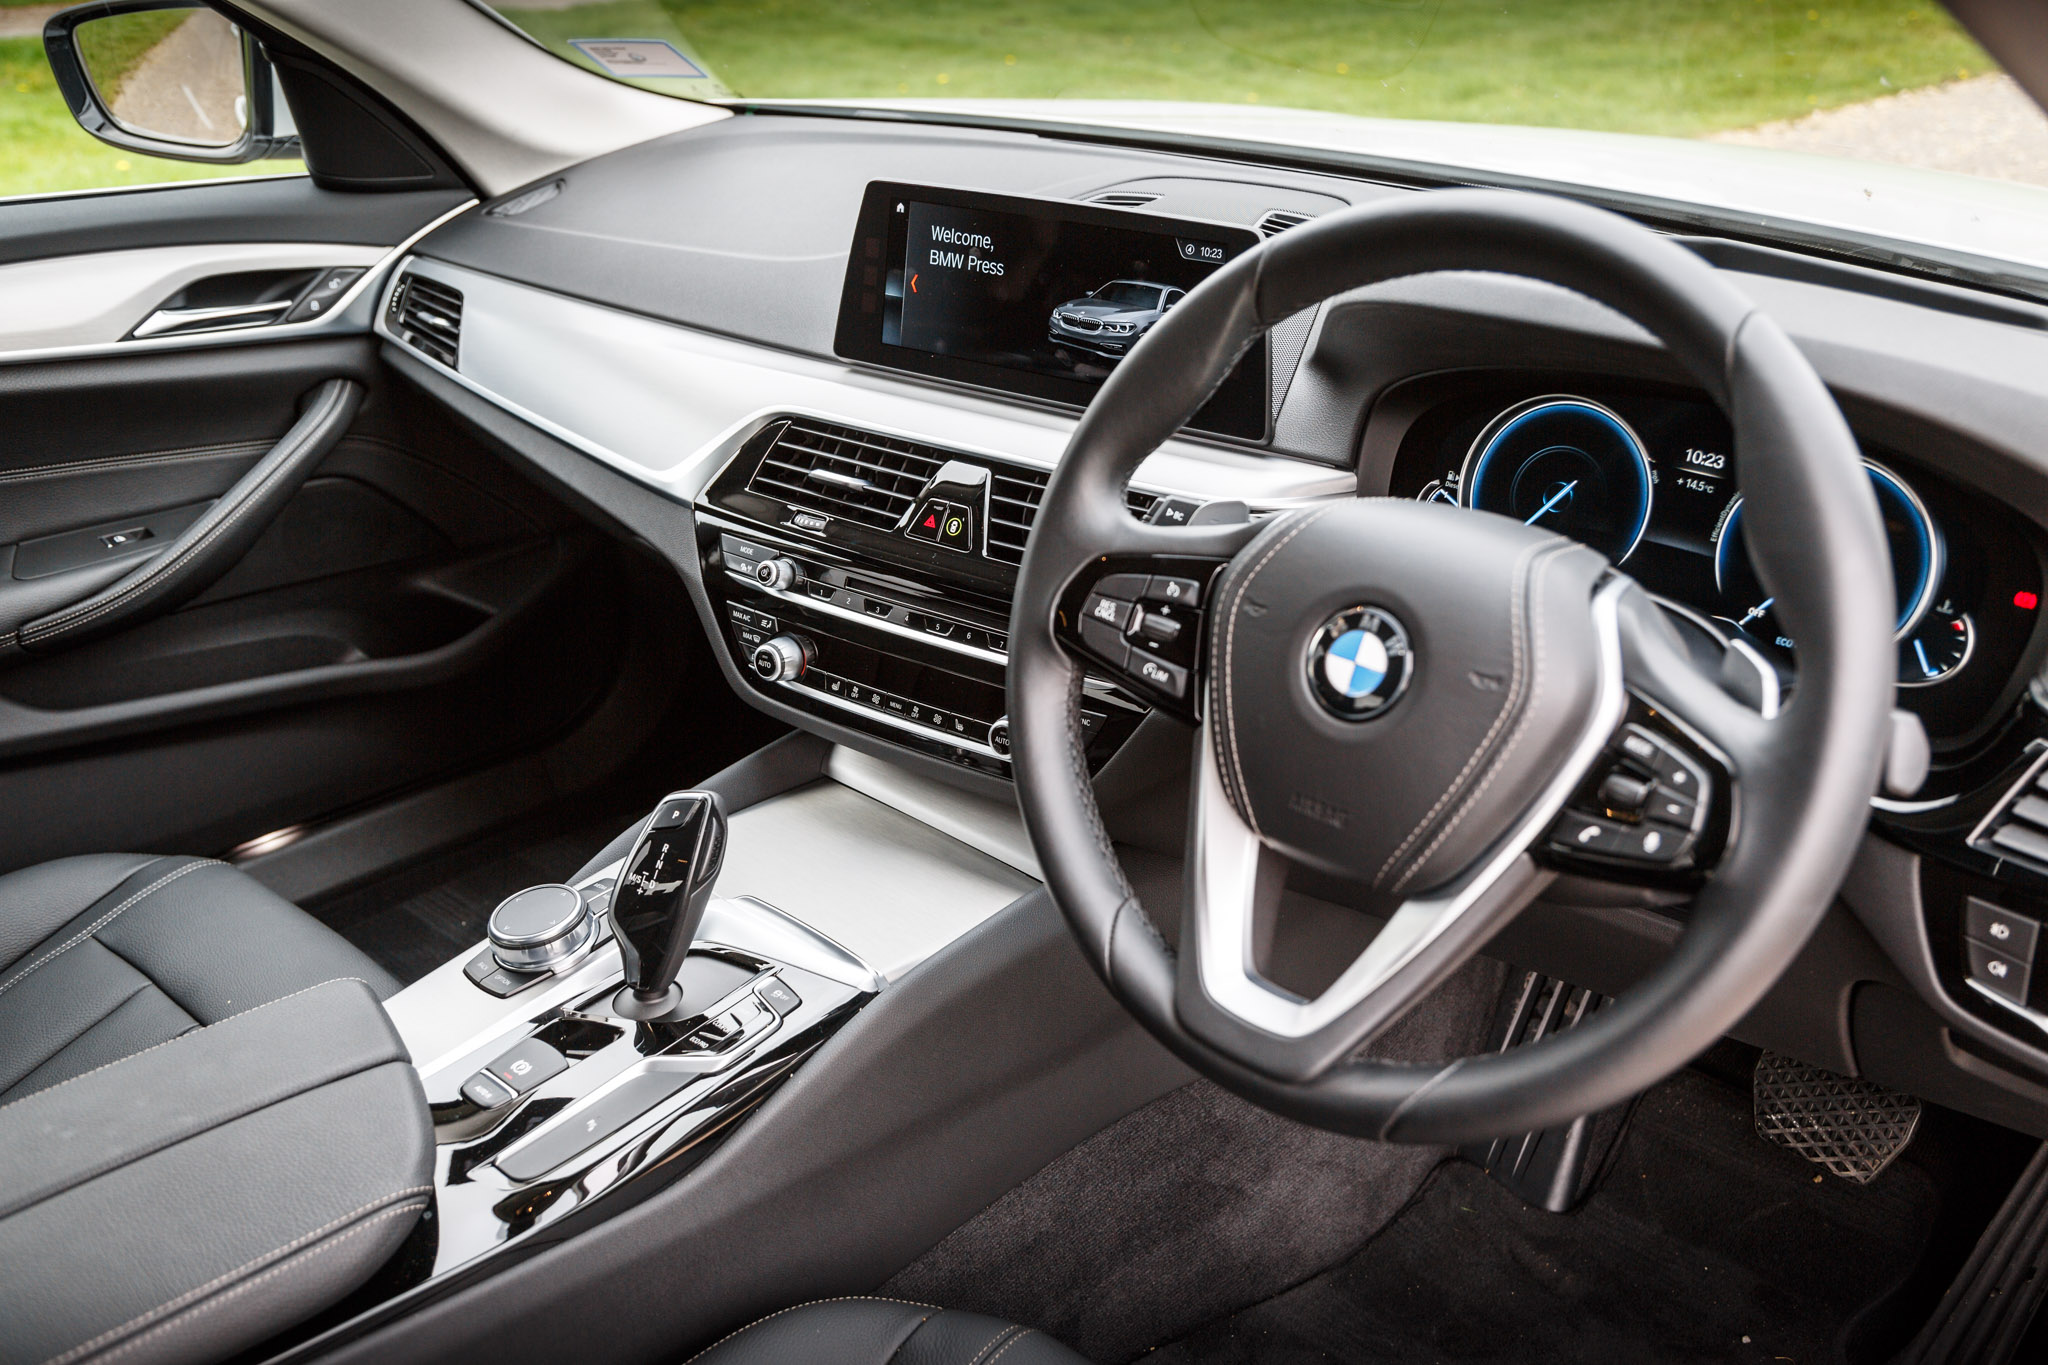 The Pros And Cons Of The New BMW 5-Series